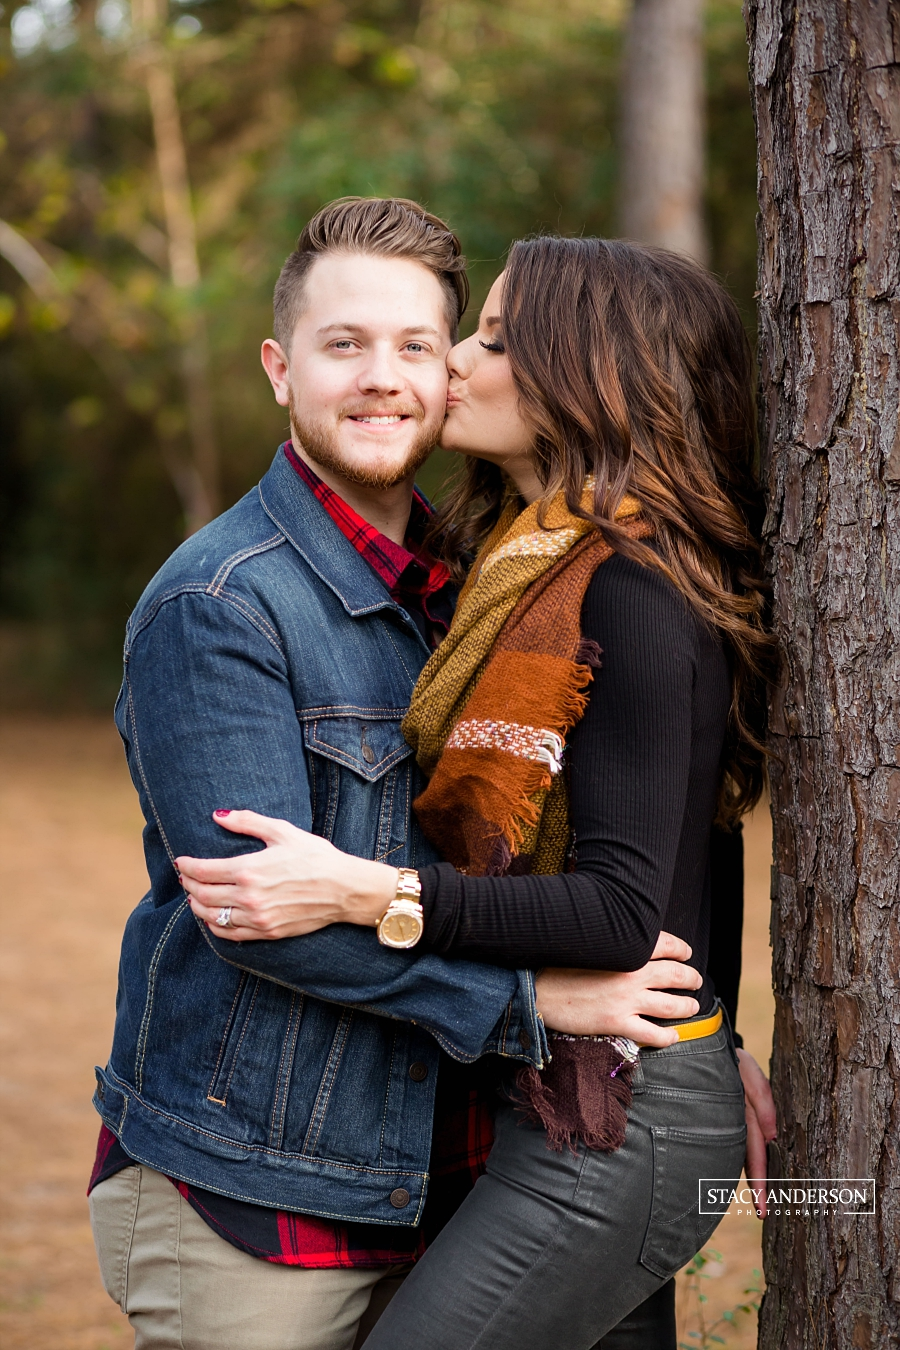 stacy-anderson-photography-houston-anniversary-photographer_0626